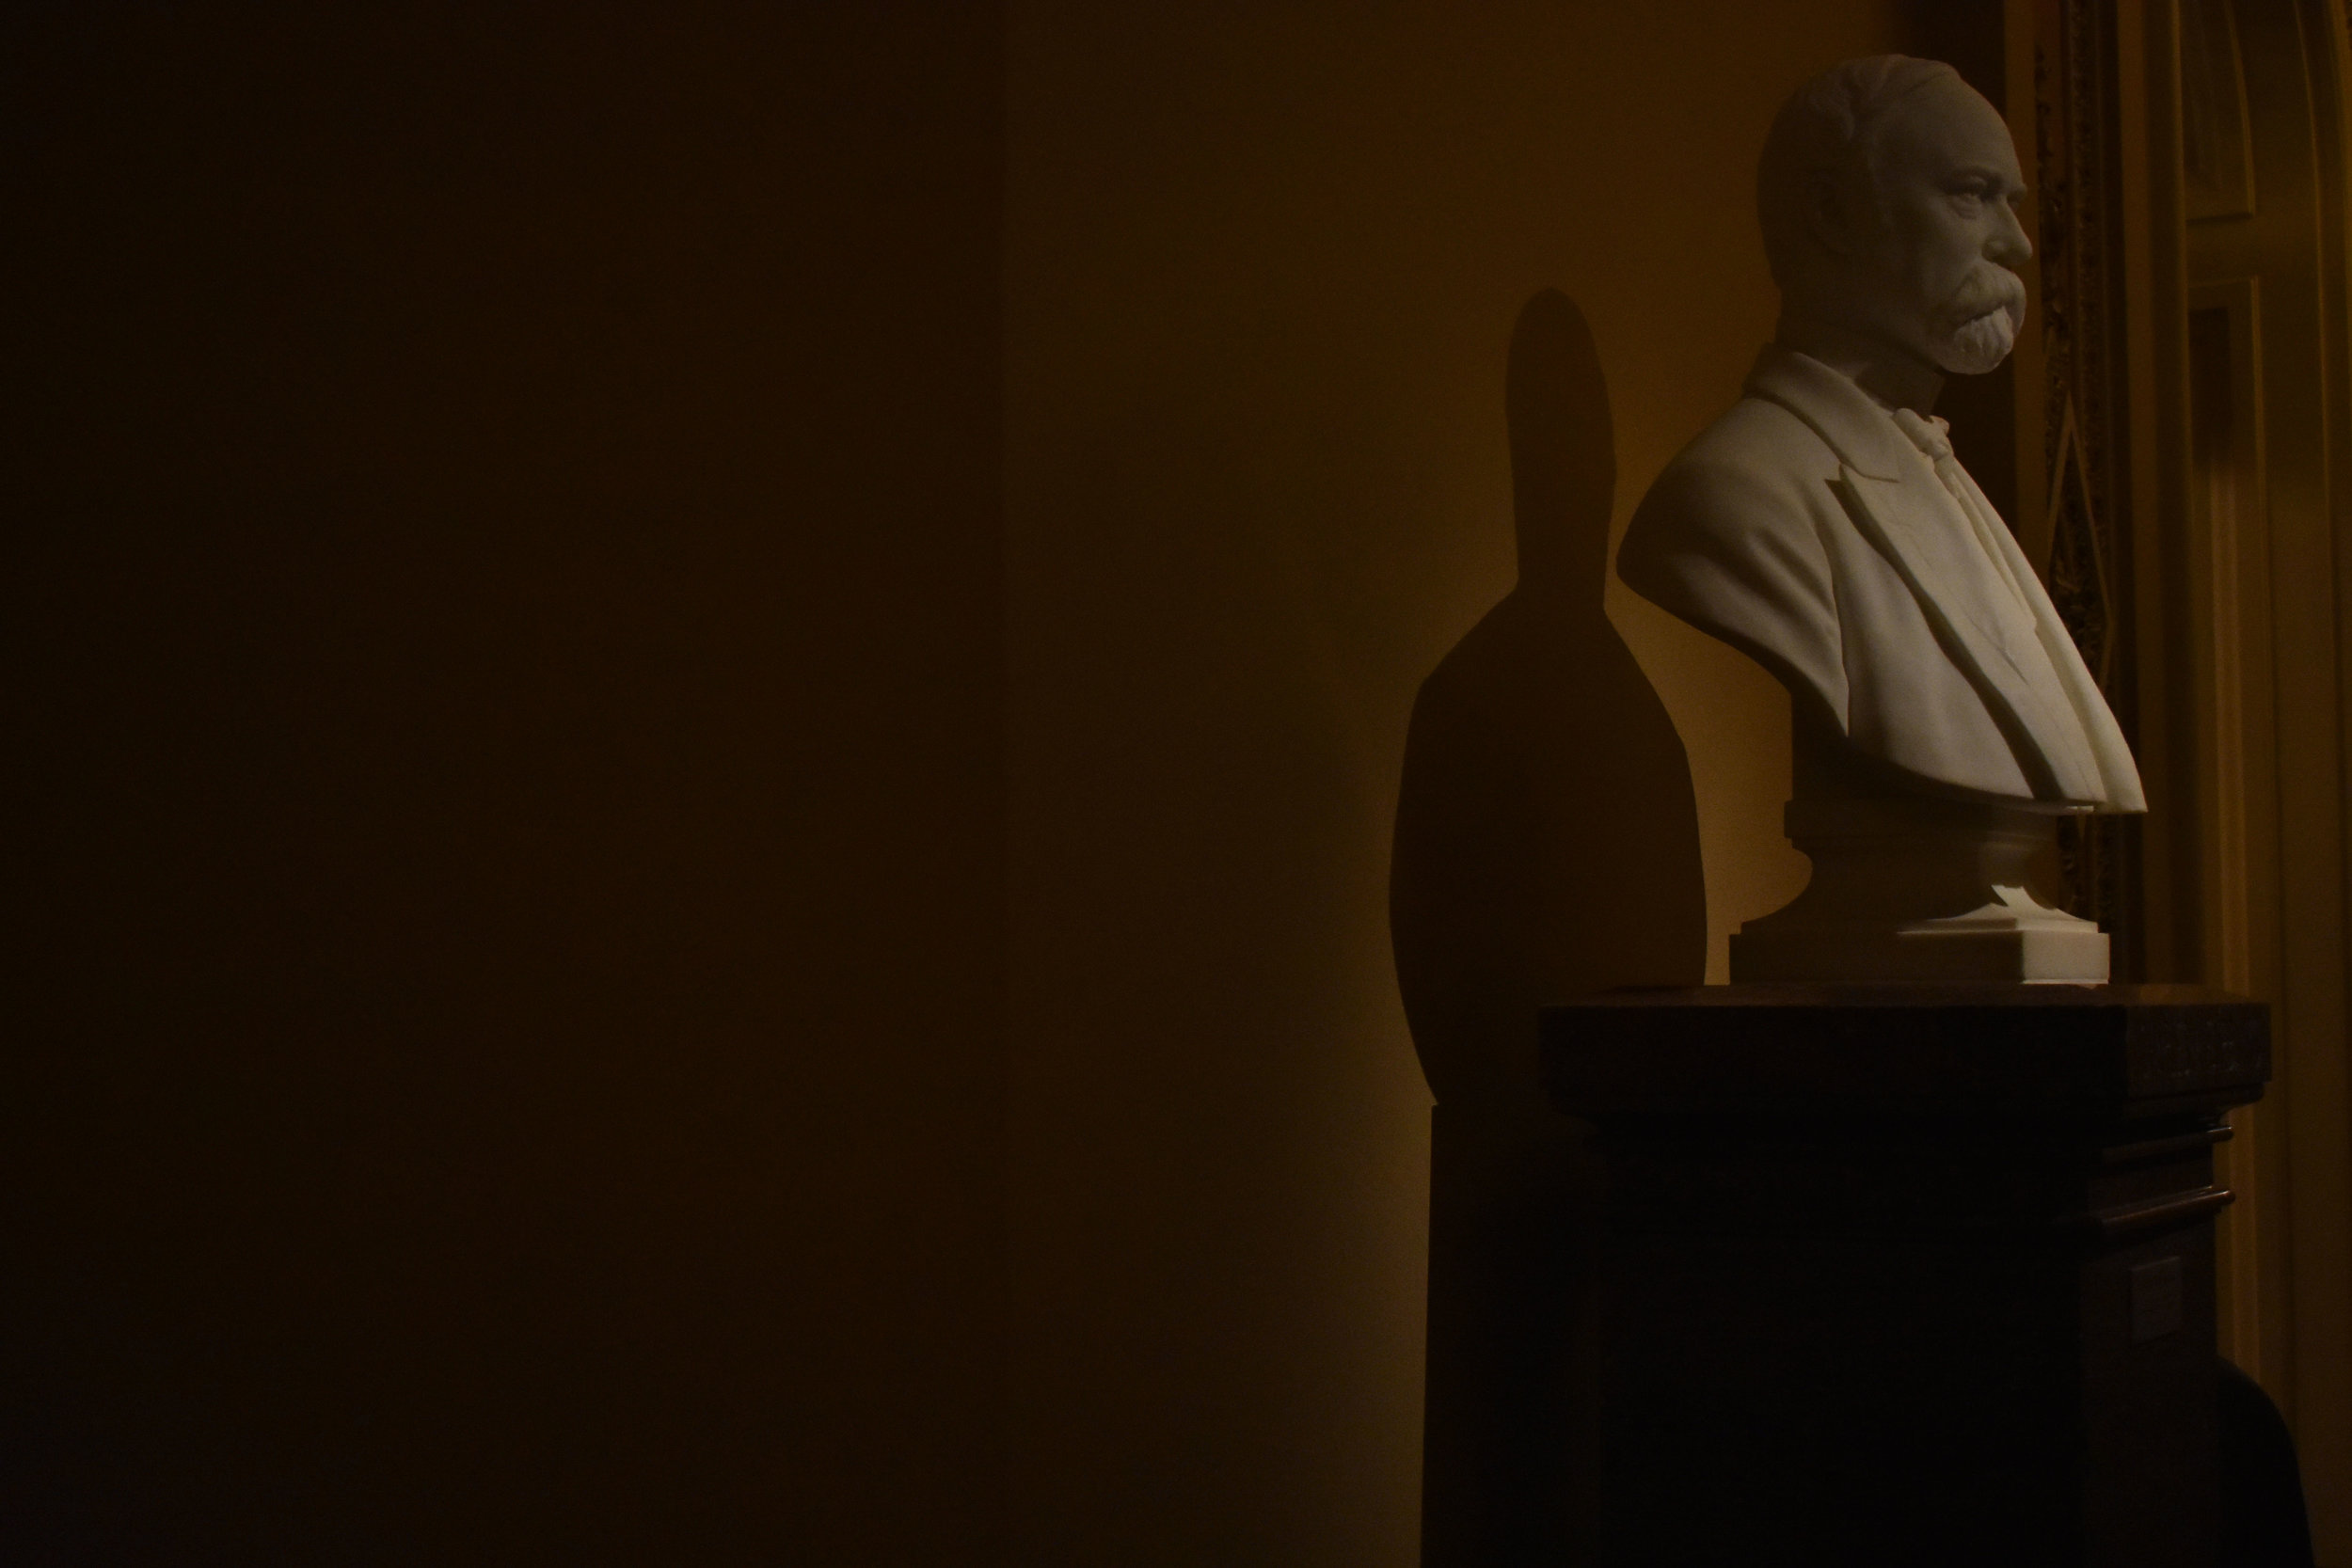 The bust of Vice President Charles W. Fairbanks, by Franklin Simmons in 1905, is seen on the second floor of the U.S. Capitol in Washington, Thursday, Jan. 25, 2018. The Republican served in President Theodore Roosevelt's administration from 1905-1909. (Lindsey Leake/American University)